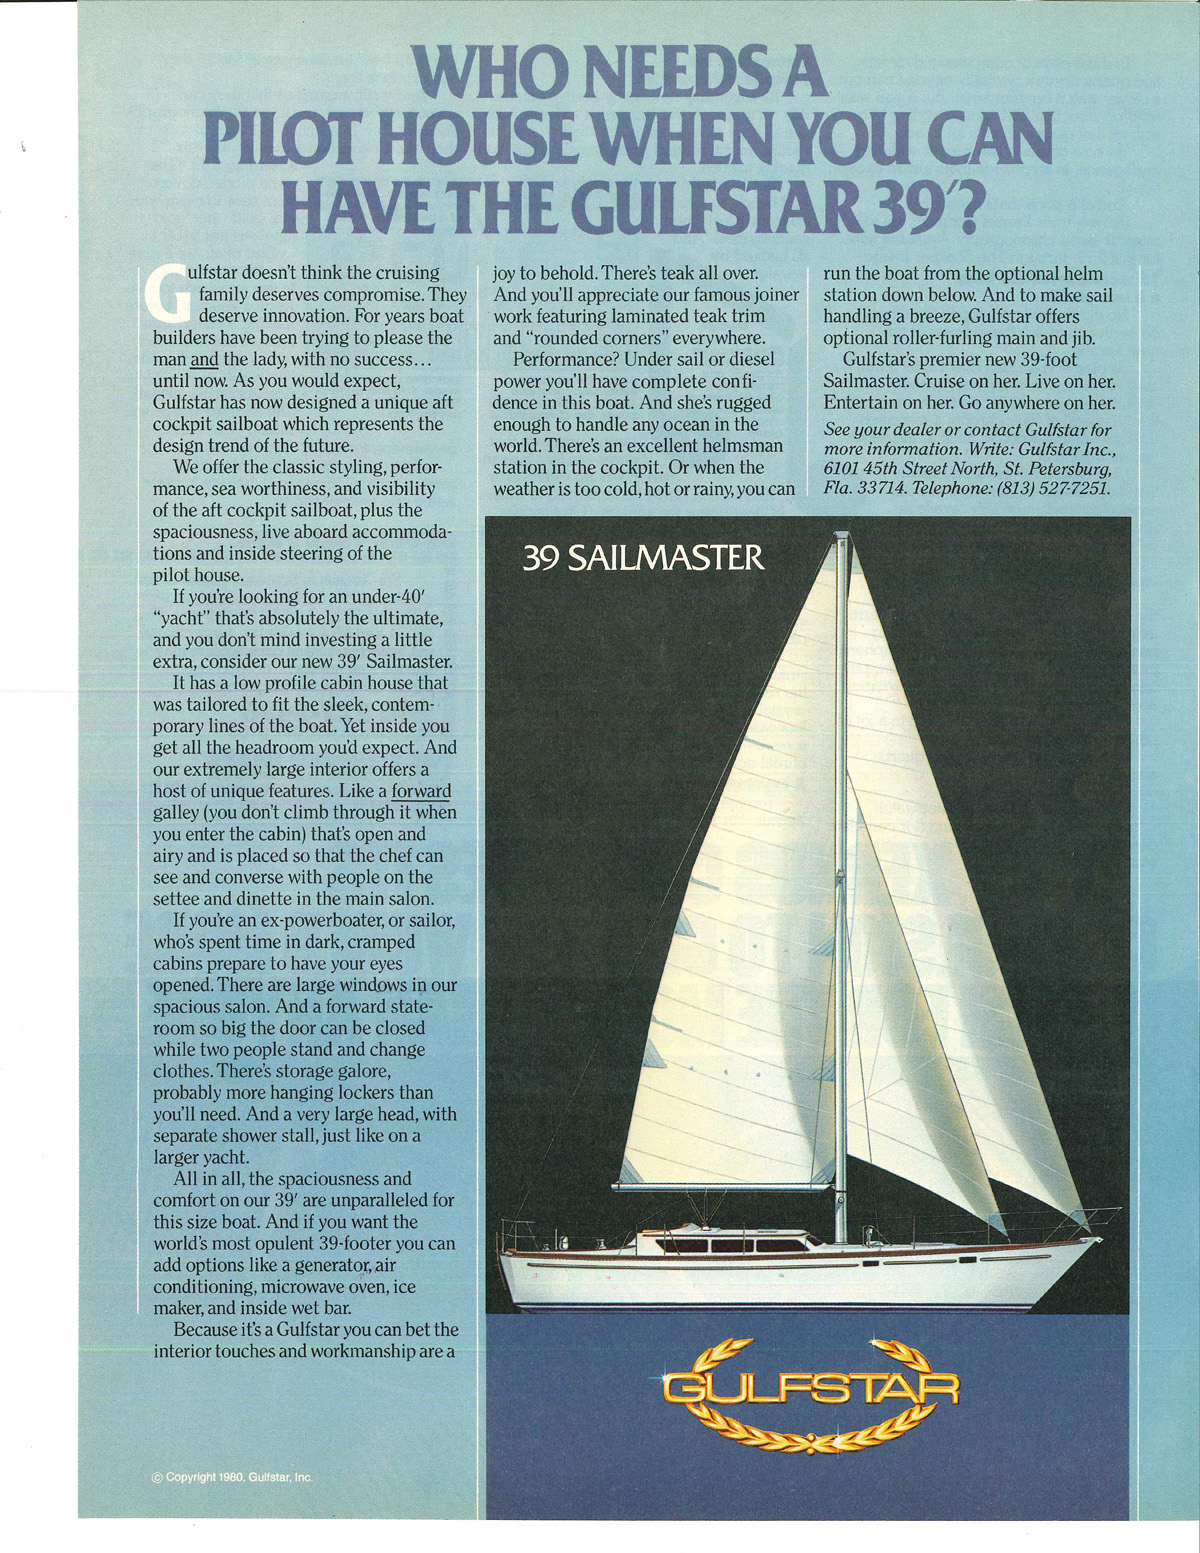 Gulfstar39Ad 1980 boat model gulfstar sailboats  at cos-gaming.co